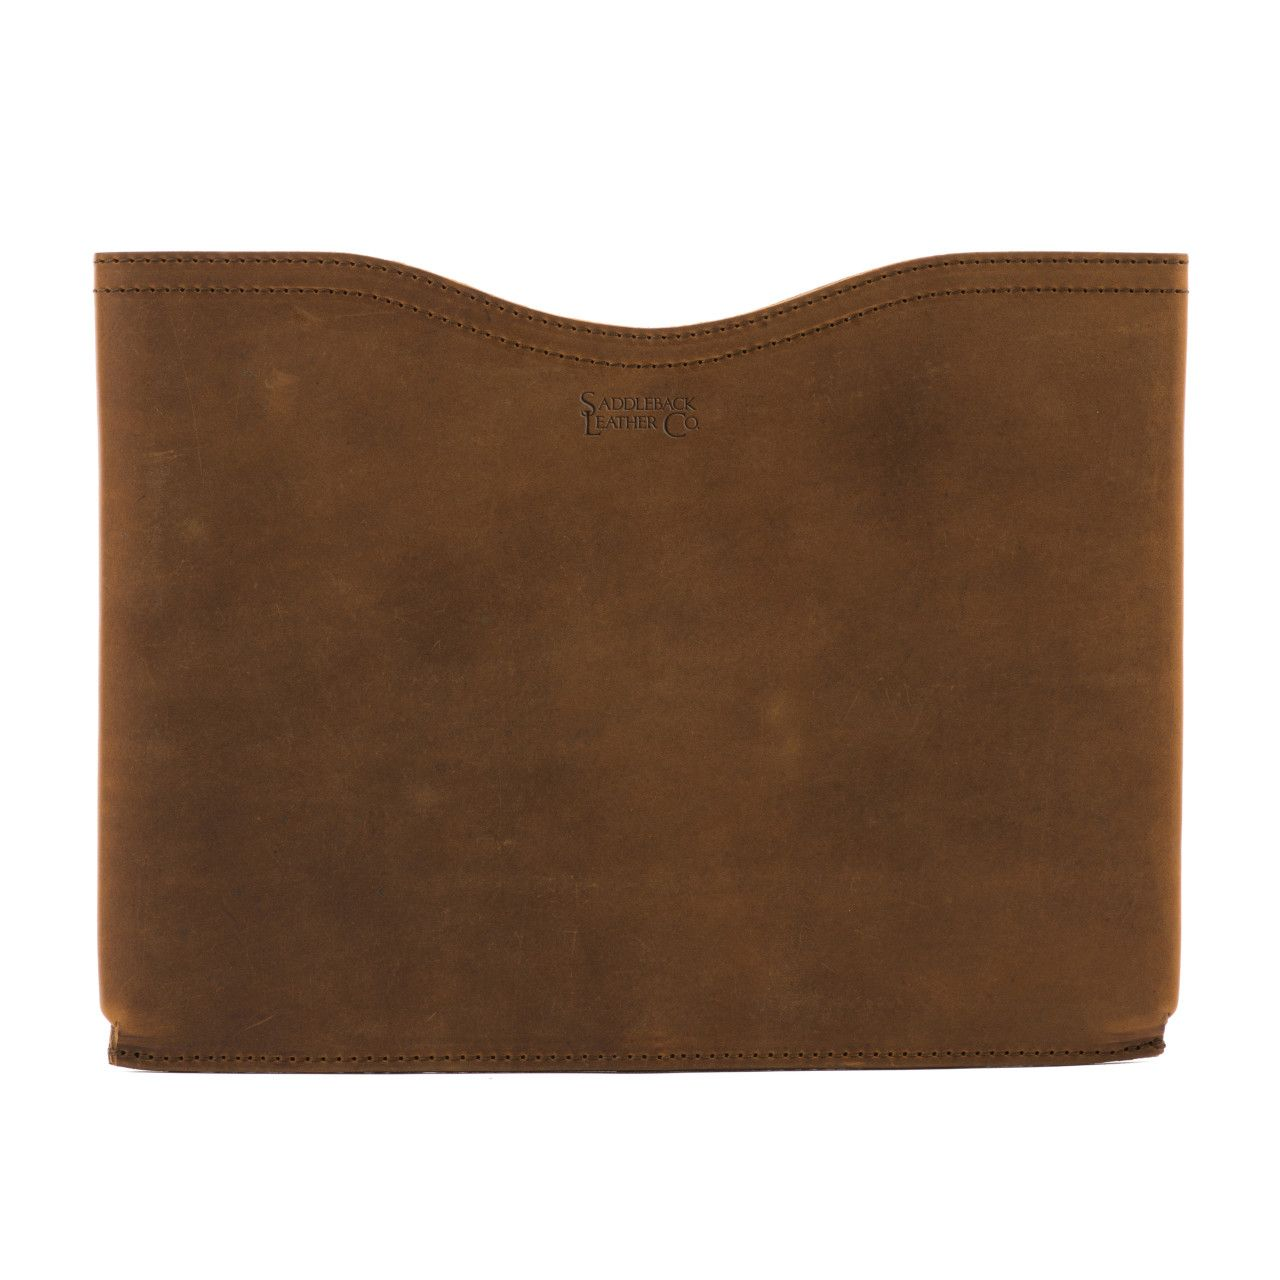 macbook pro leather sleeve medium in tobacco leather